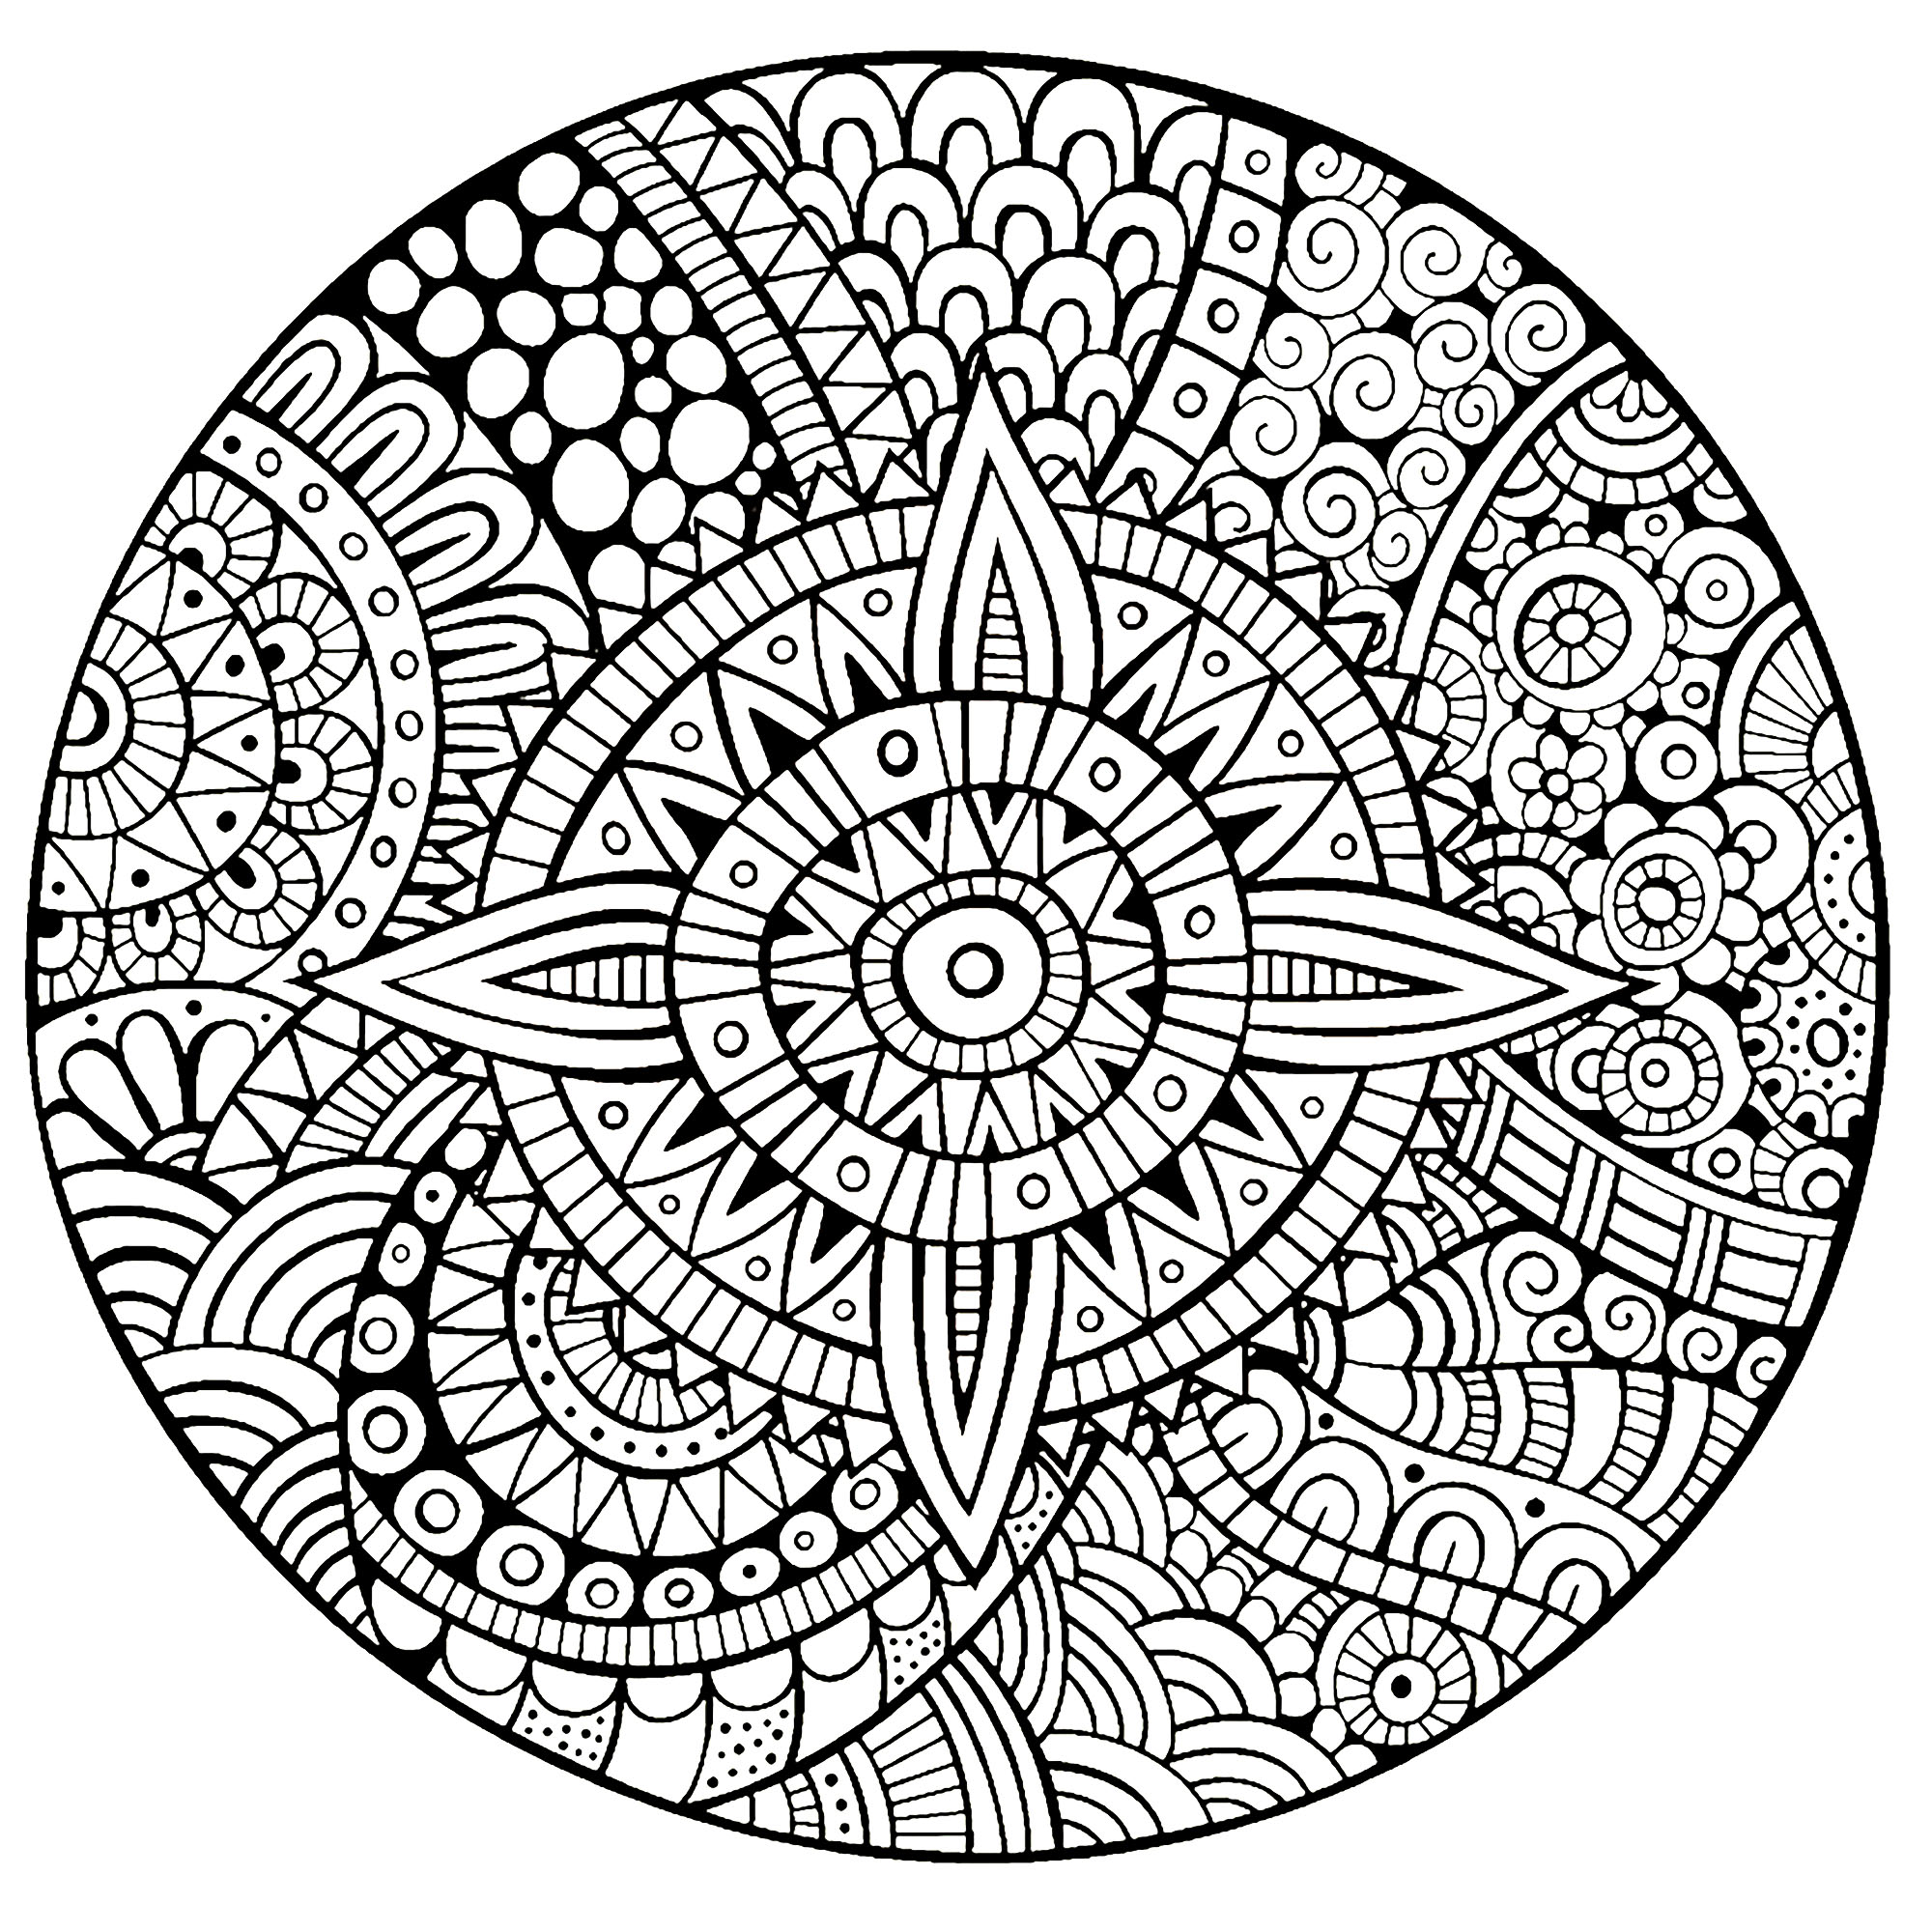 Soothing and calming Mandala - Difficult Mandalas (for ...